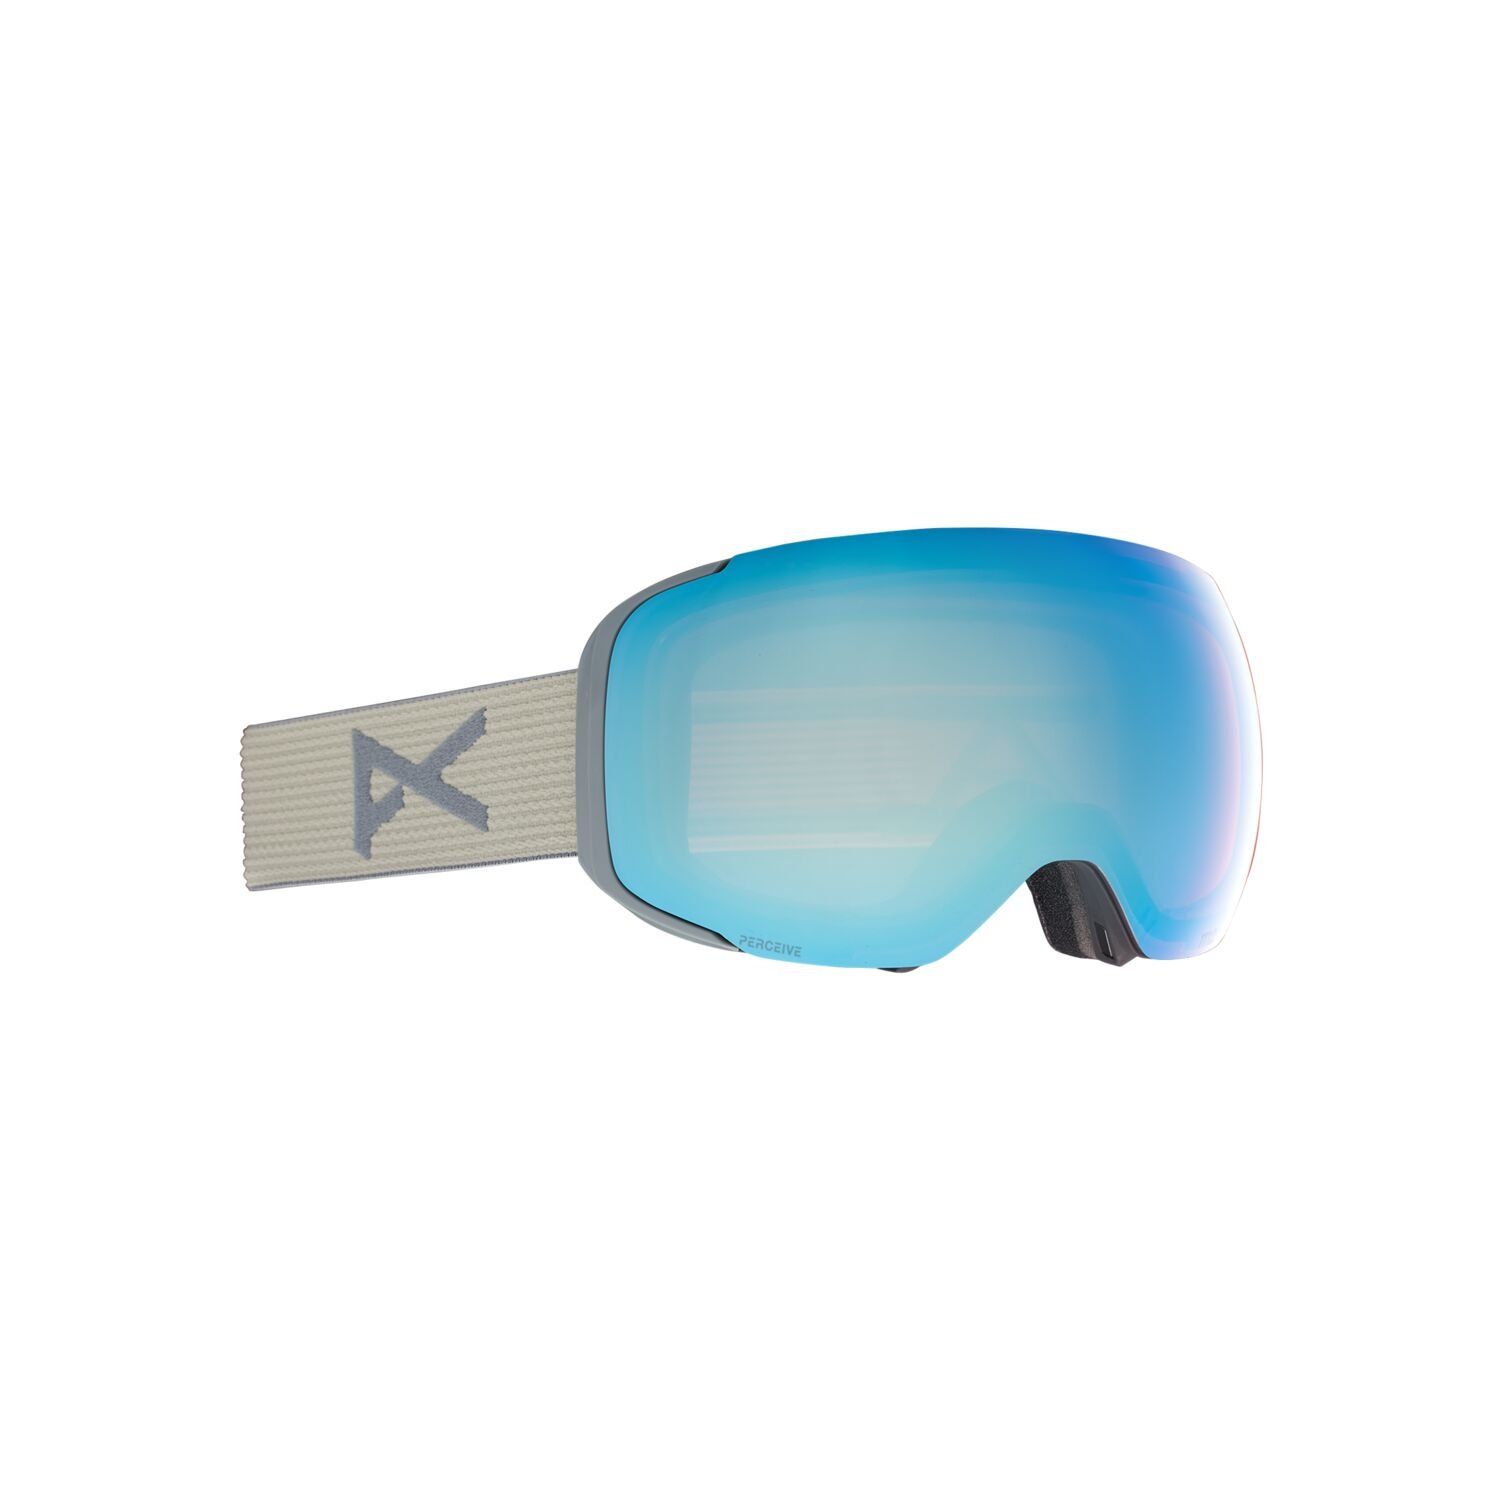 Anon M2 w/ Spare Lens Snowboard Goggle (Multiple Color Options)